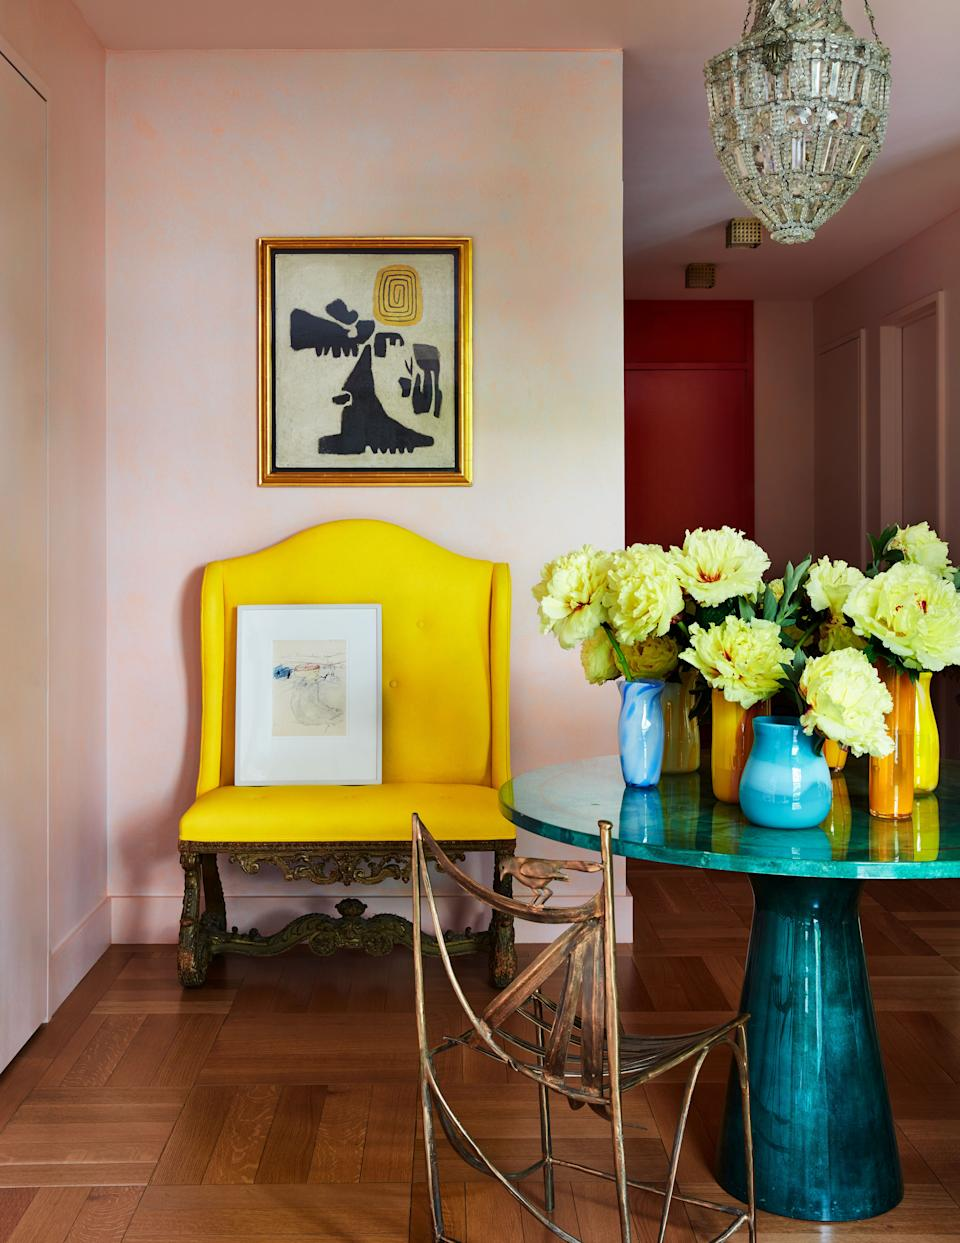 """<div class=""""caption""""> <a href=""""https://www.benjaminmoore.com/en-us"""" rel=""""nofollow noopener"""" target=""""_blank"""" data-ylk=""""slk:Benjamin Moore"""" class=""""link rapid-noclick-resp"""">Benjamin Moore</a> shades of pink and red warm the entrance hall, where a 1970s Aldo Tura table centers the vestibule; Claude Lalanne chair, antique Italian bench, Willi Baumeister painting. </div> <cite class=""""credit"""">Stephen Kent Johnson </cite>"""